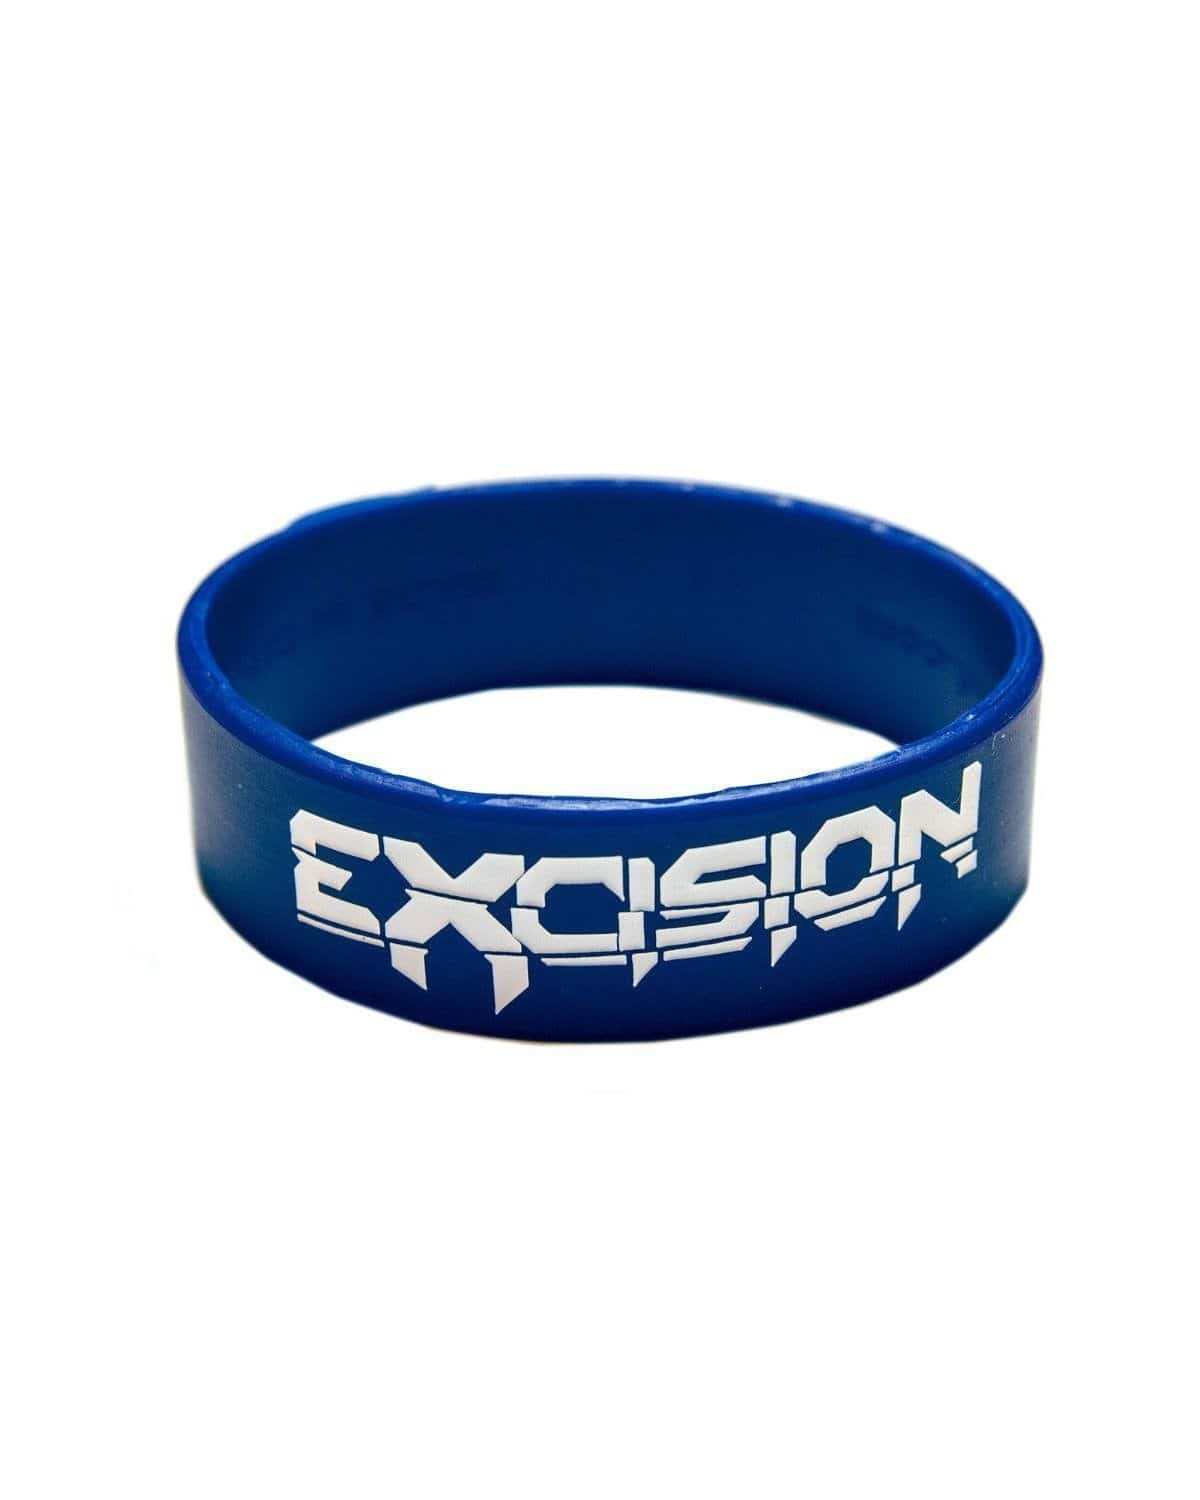 Excision Wristband